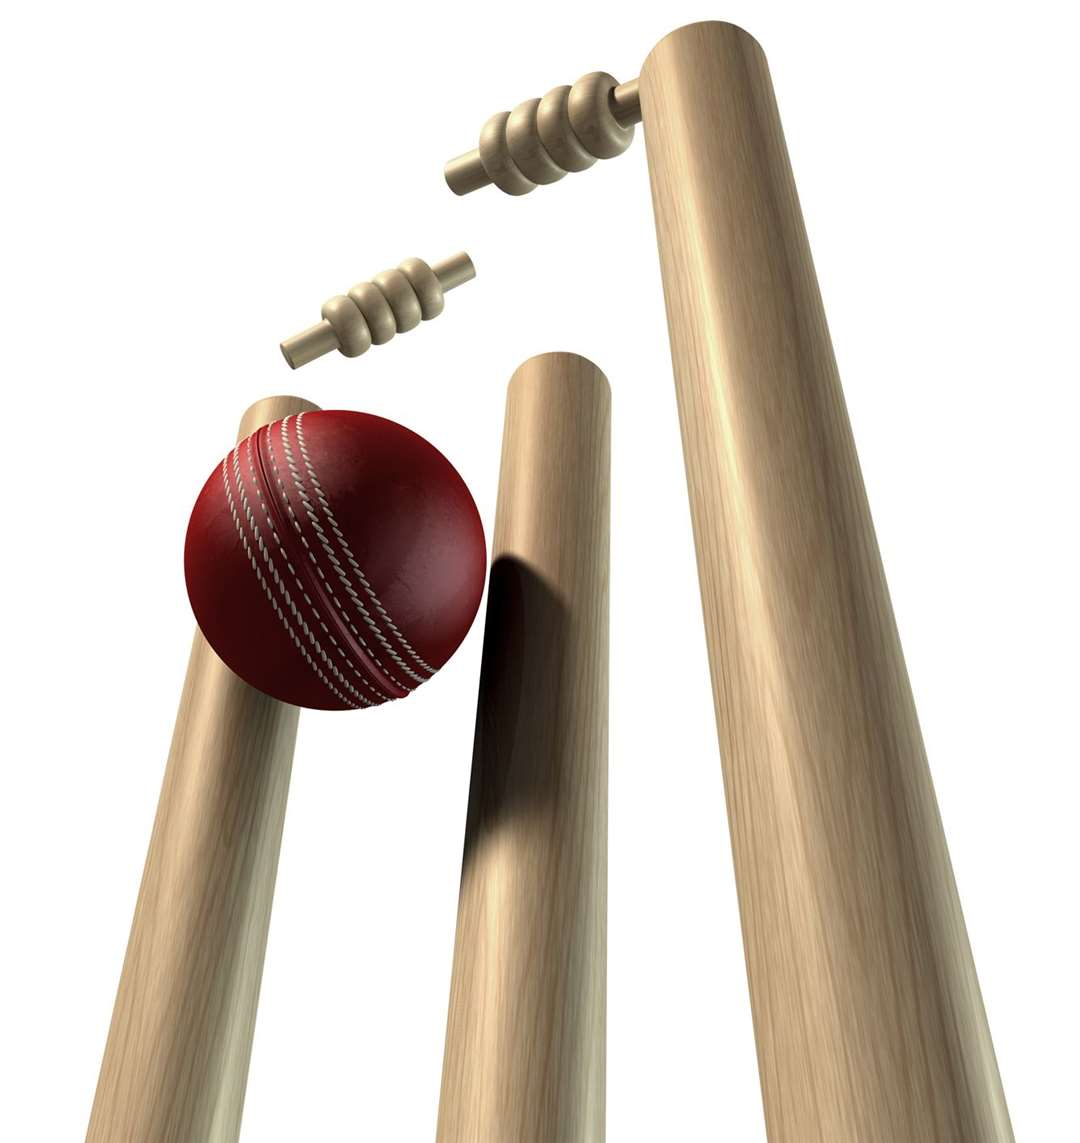 Cricket Ball Hitting Wickets Perspective Isolated (14163634)